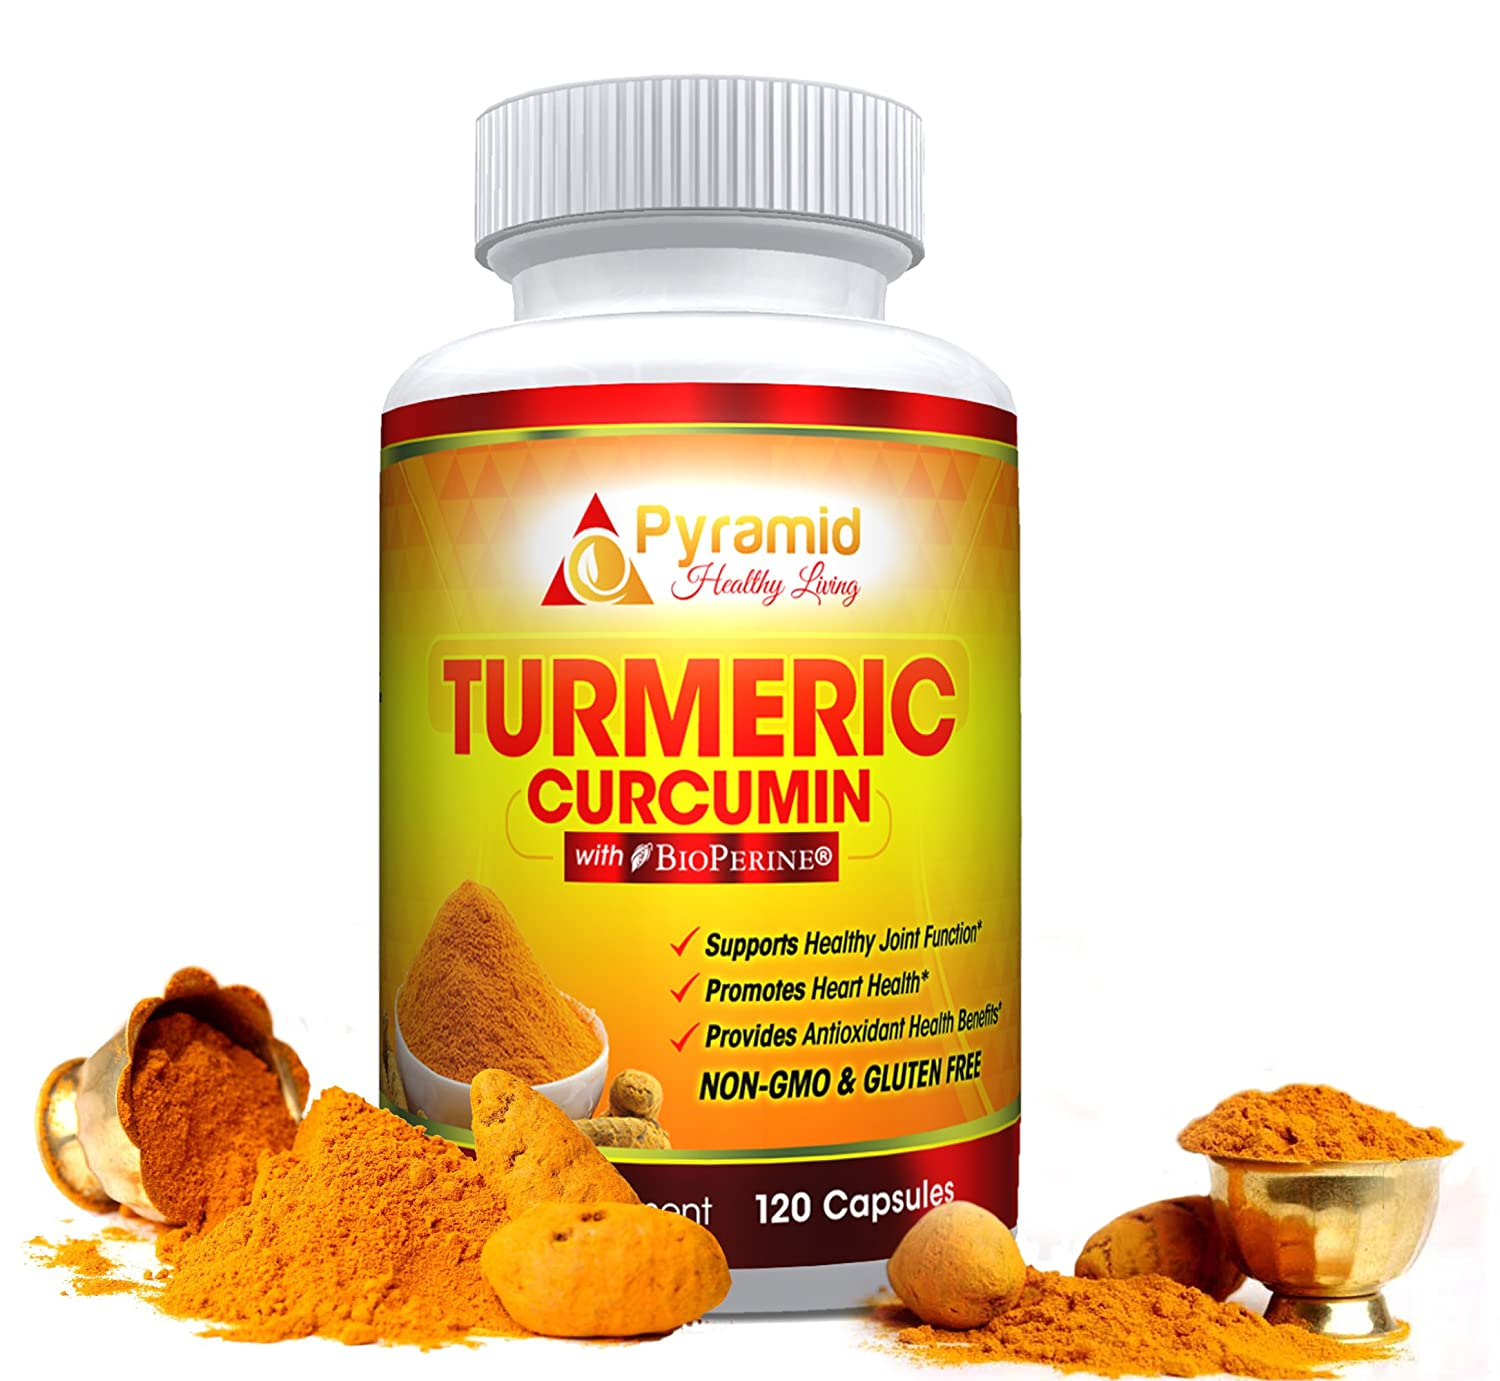 Amazon.com: Premium Grade Turmeric Curcumin Supplement with Bioperine and 95% Standardized Curcuminoids for Optimal Absorption |1300mg Highest Potency, ...